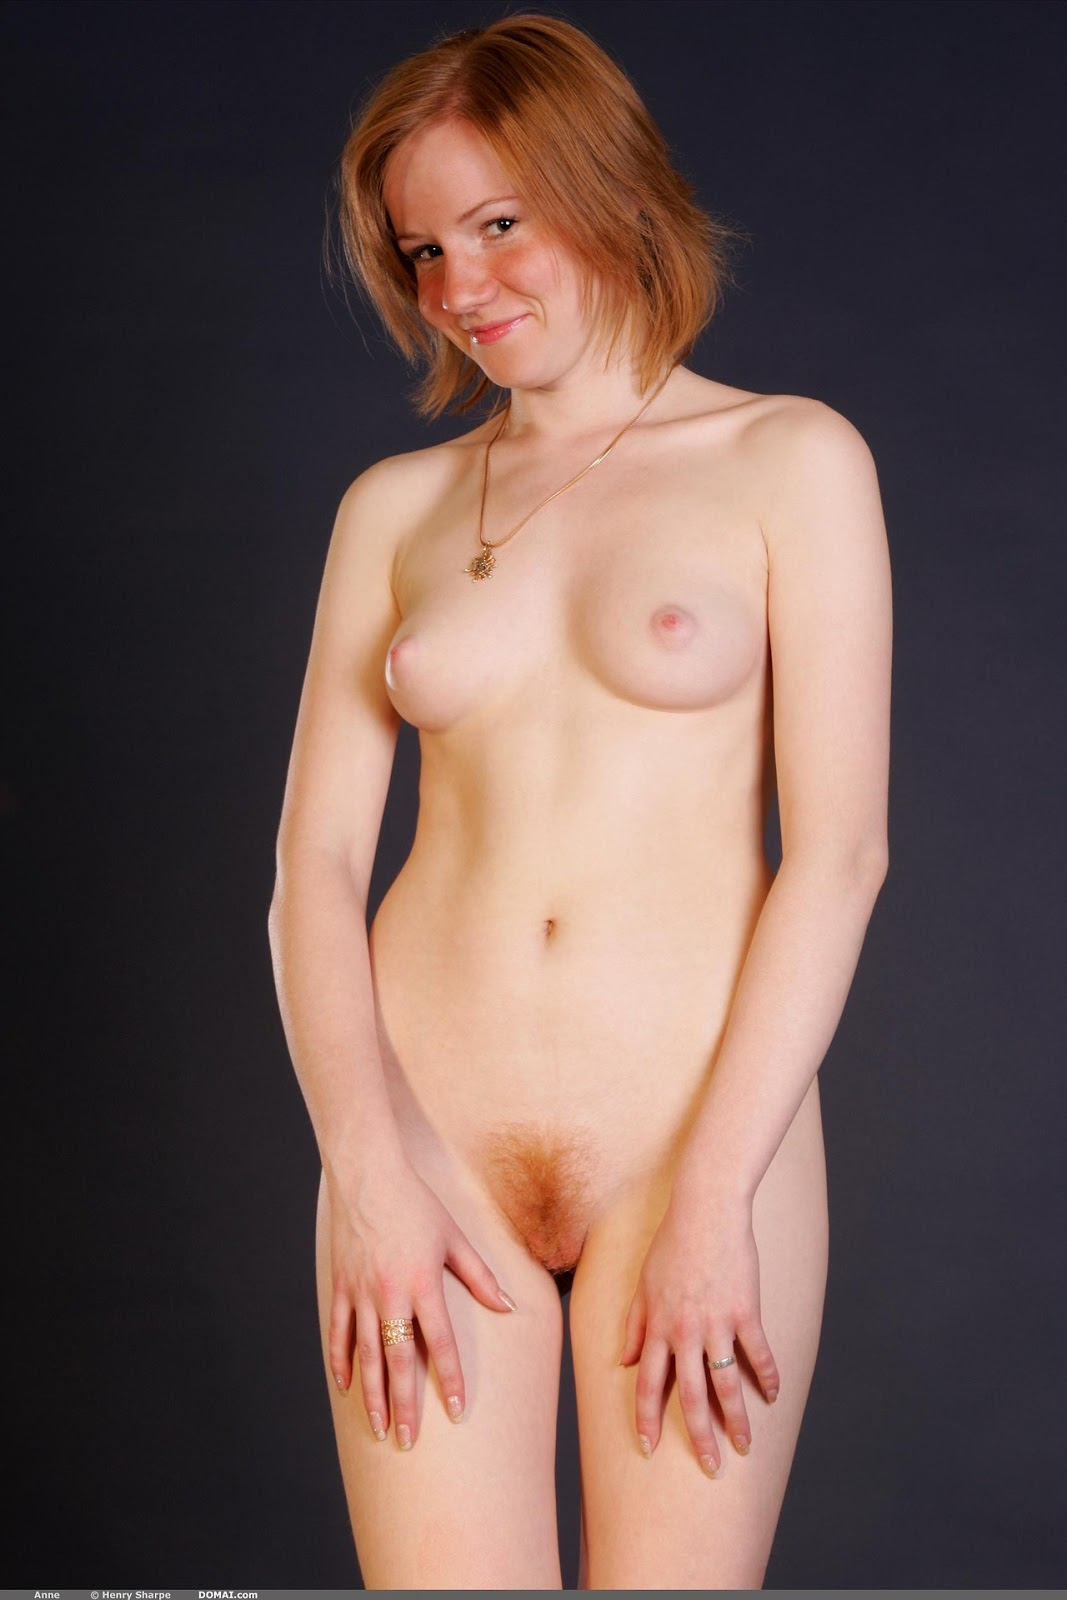 Nude Female Pubic Hair